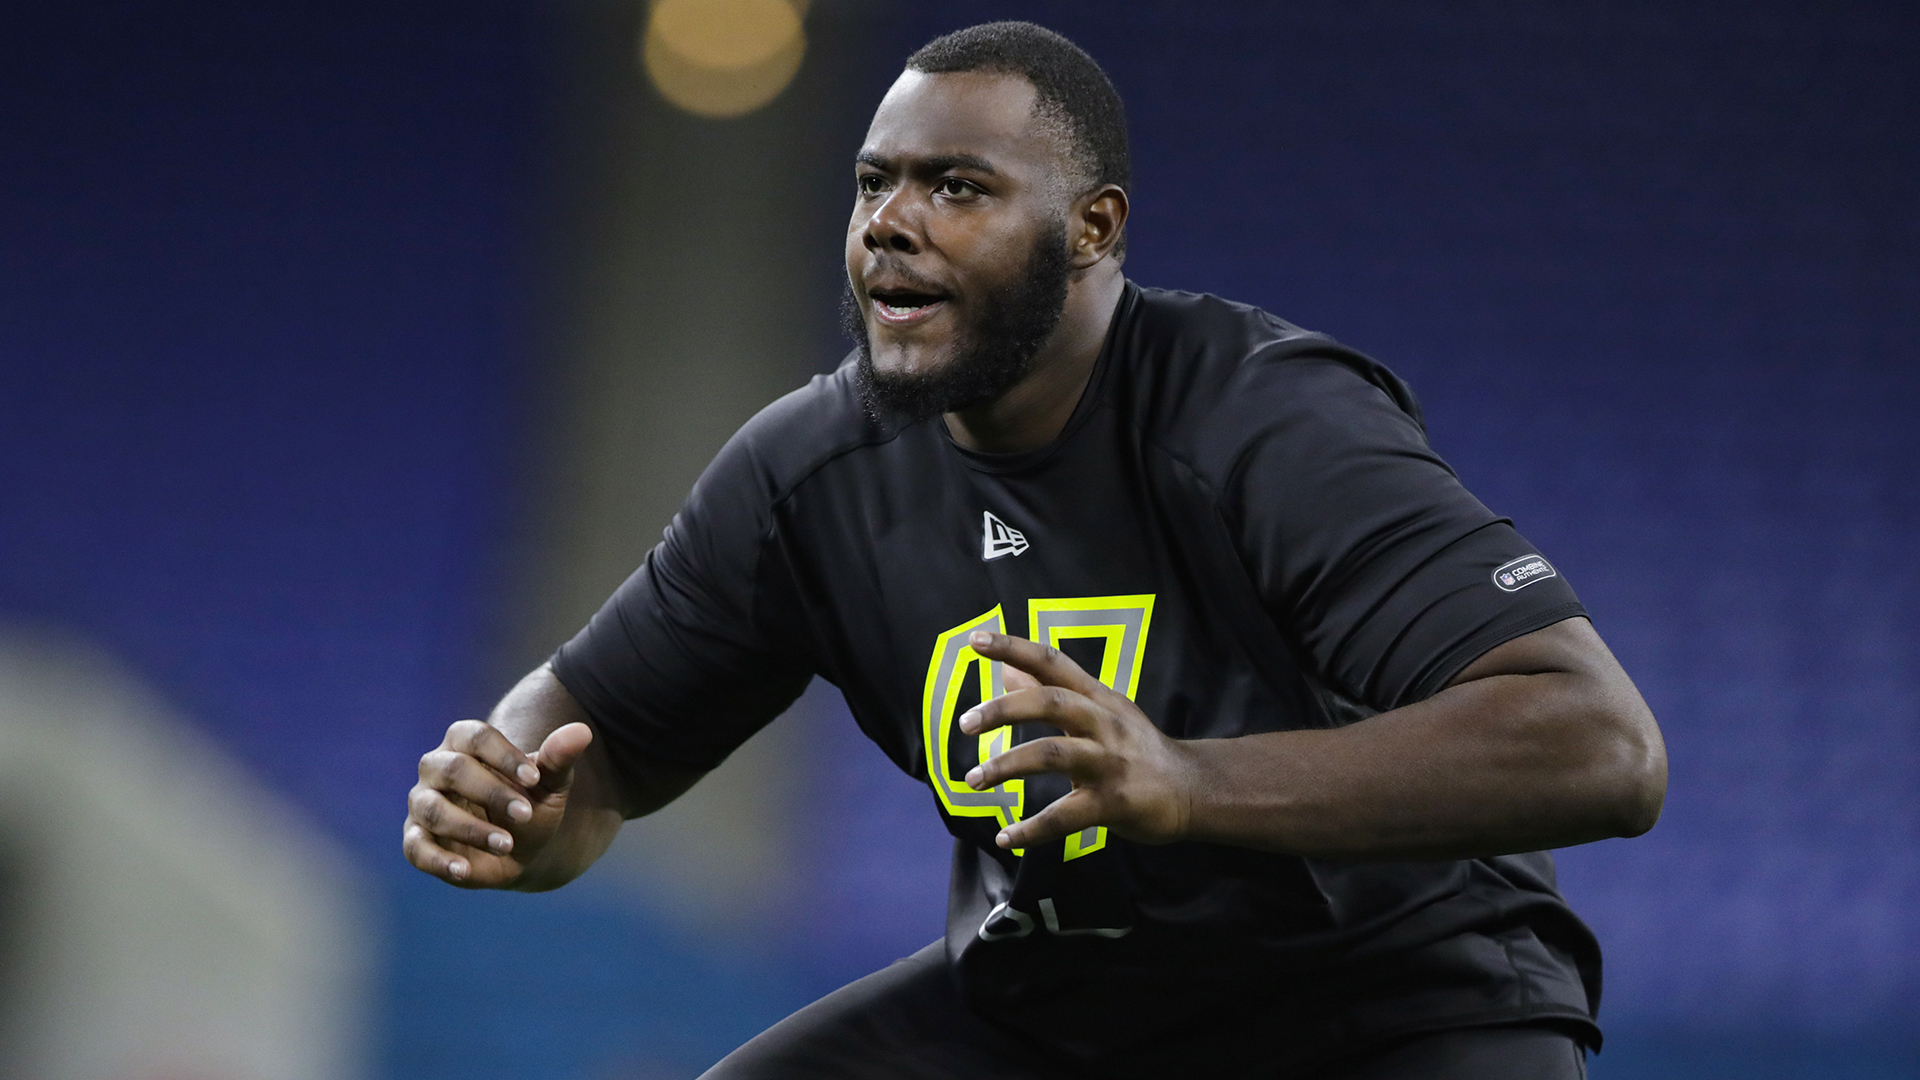 NFL draft top offensive tackles: Andrew Thomas